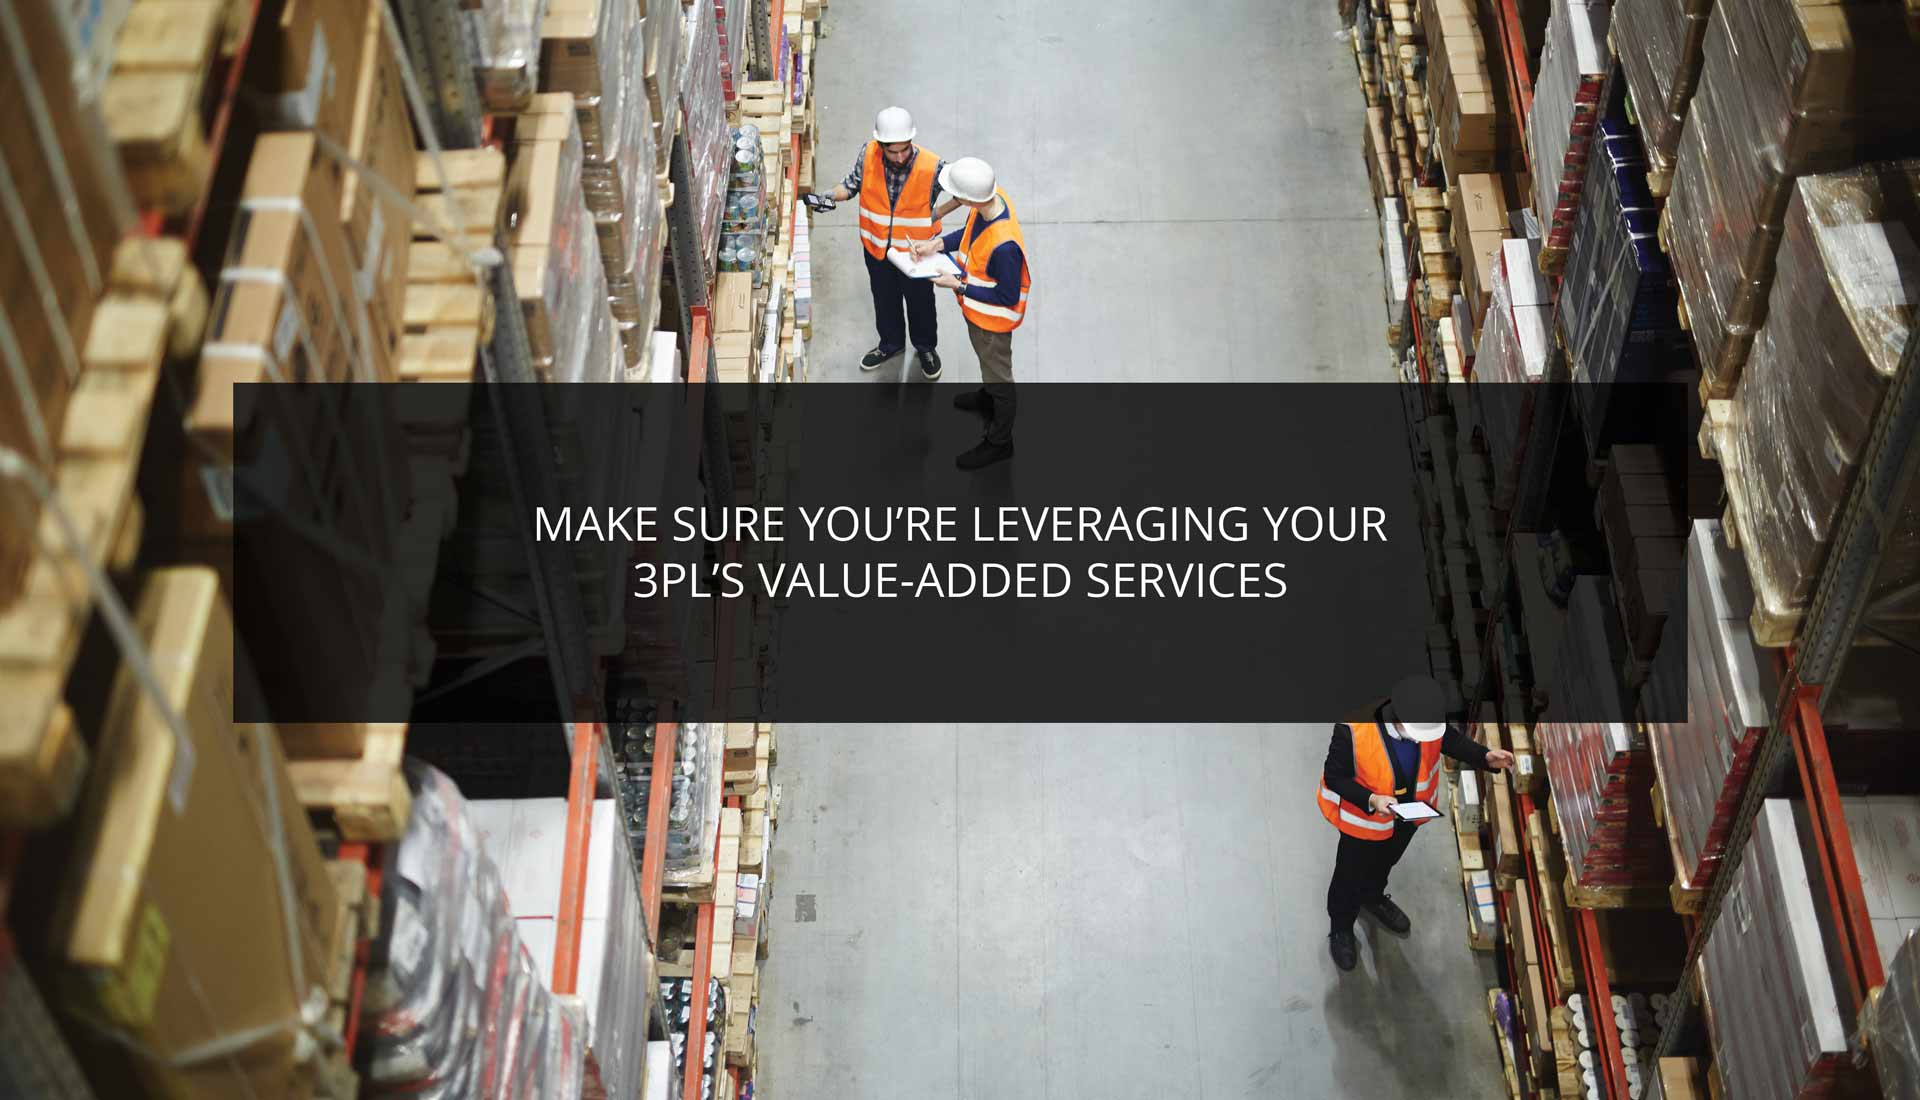 Make Sure You're Leveraging Your 3PL's Value-Added Services